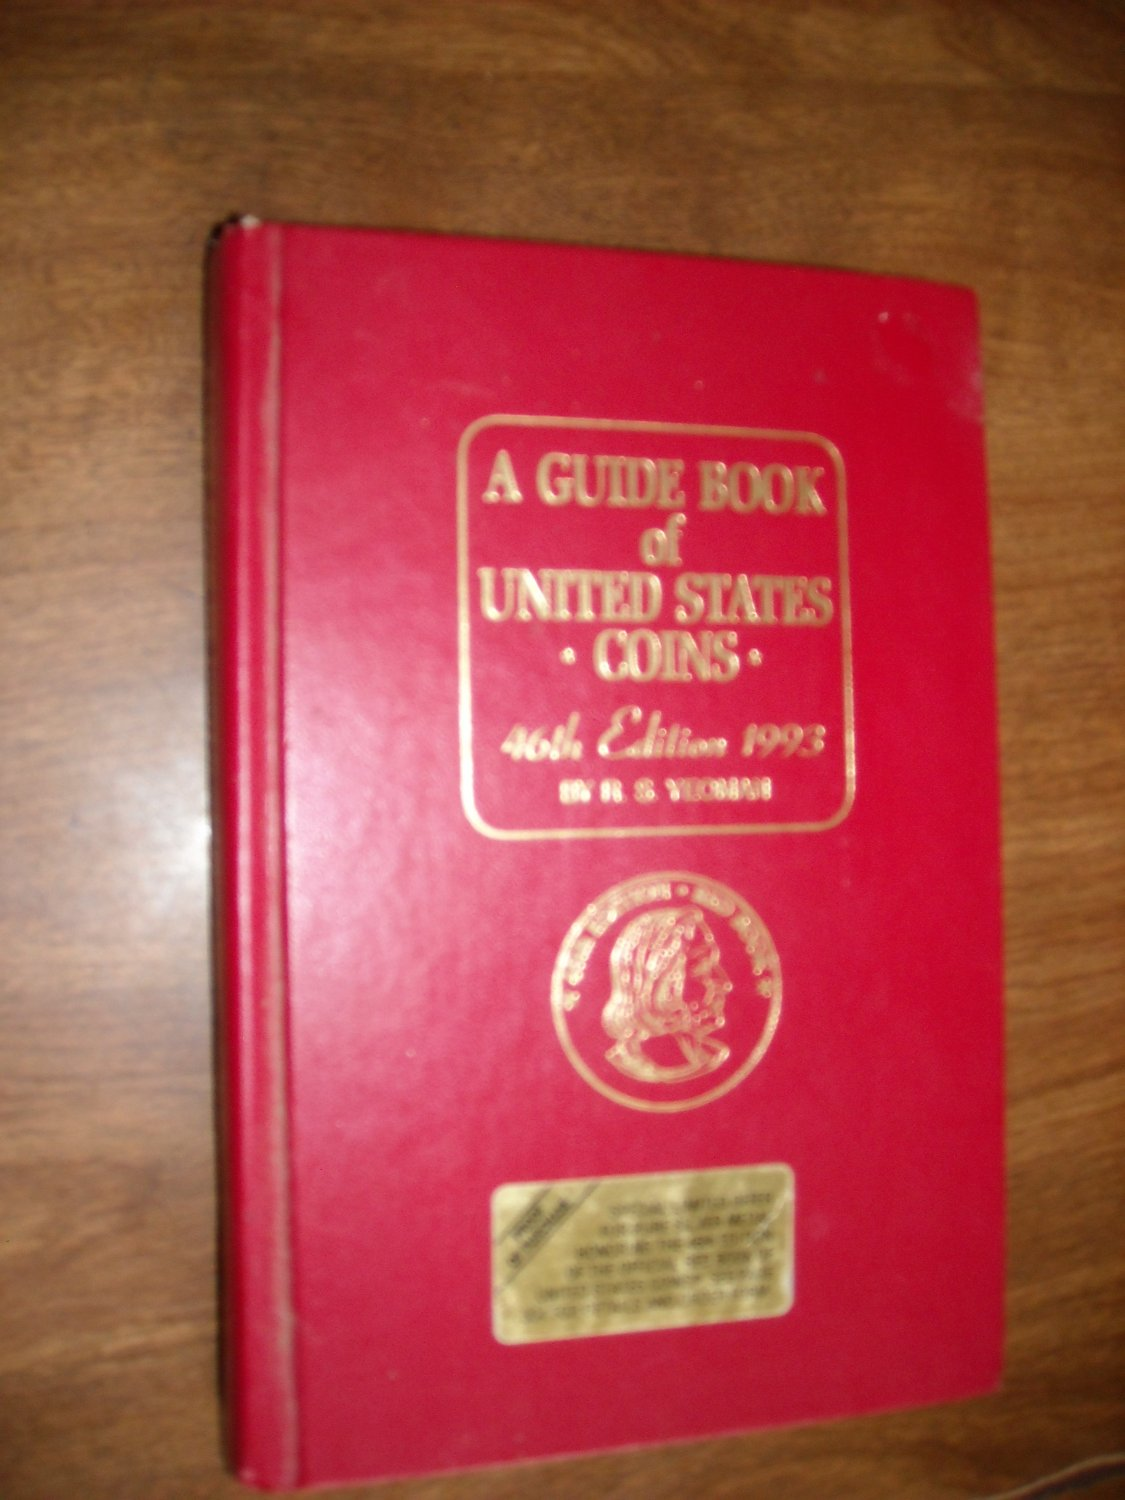 A Guide Book of United States Coins 46th Edition 1993 by R. S. Yeoman (BB27)